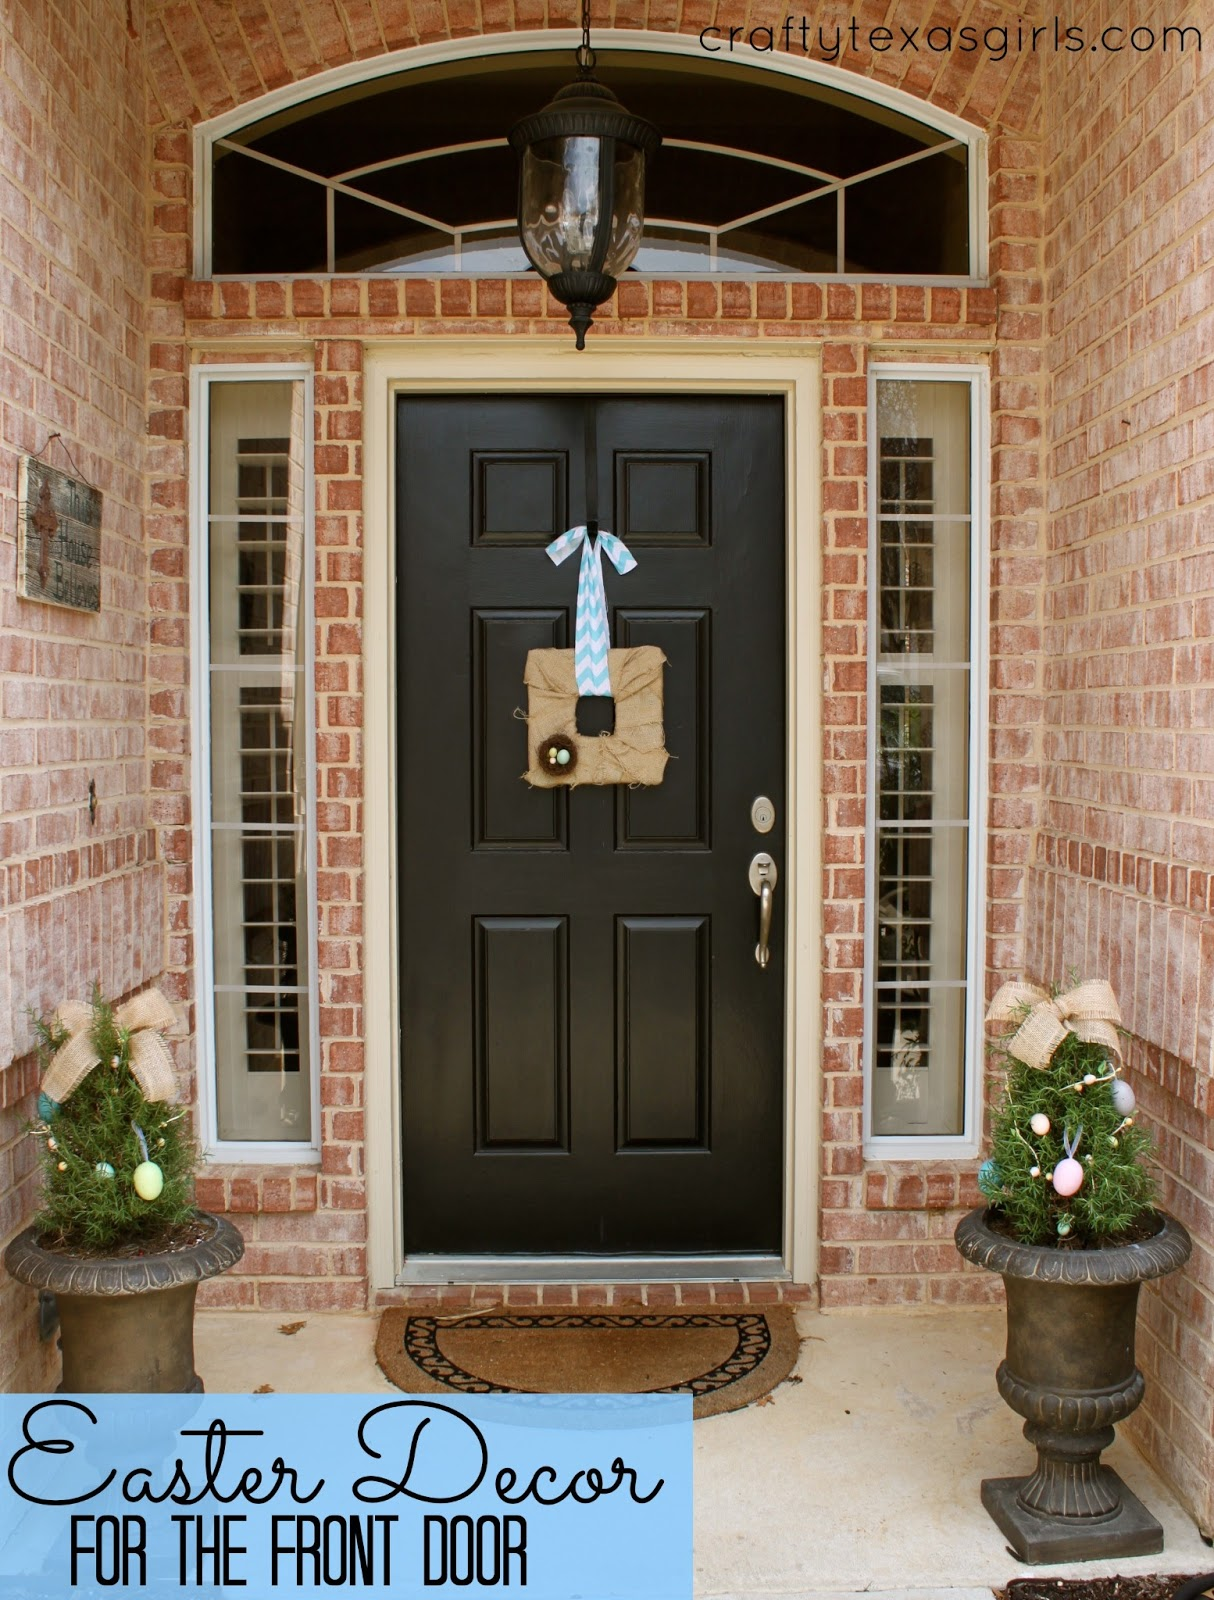 & Crafty Texas Girls: Craft It: Easter Decor for the Front Door